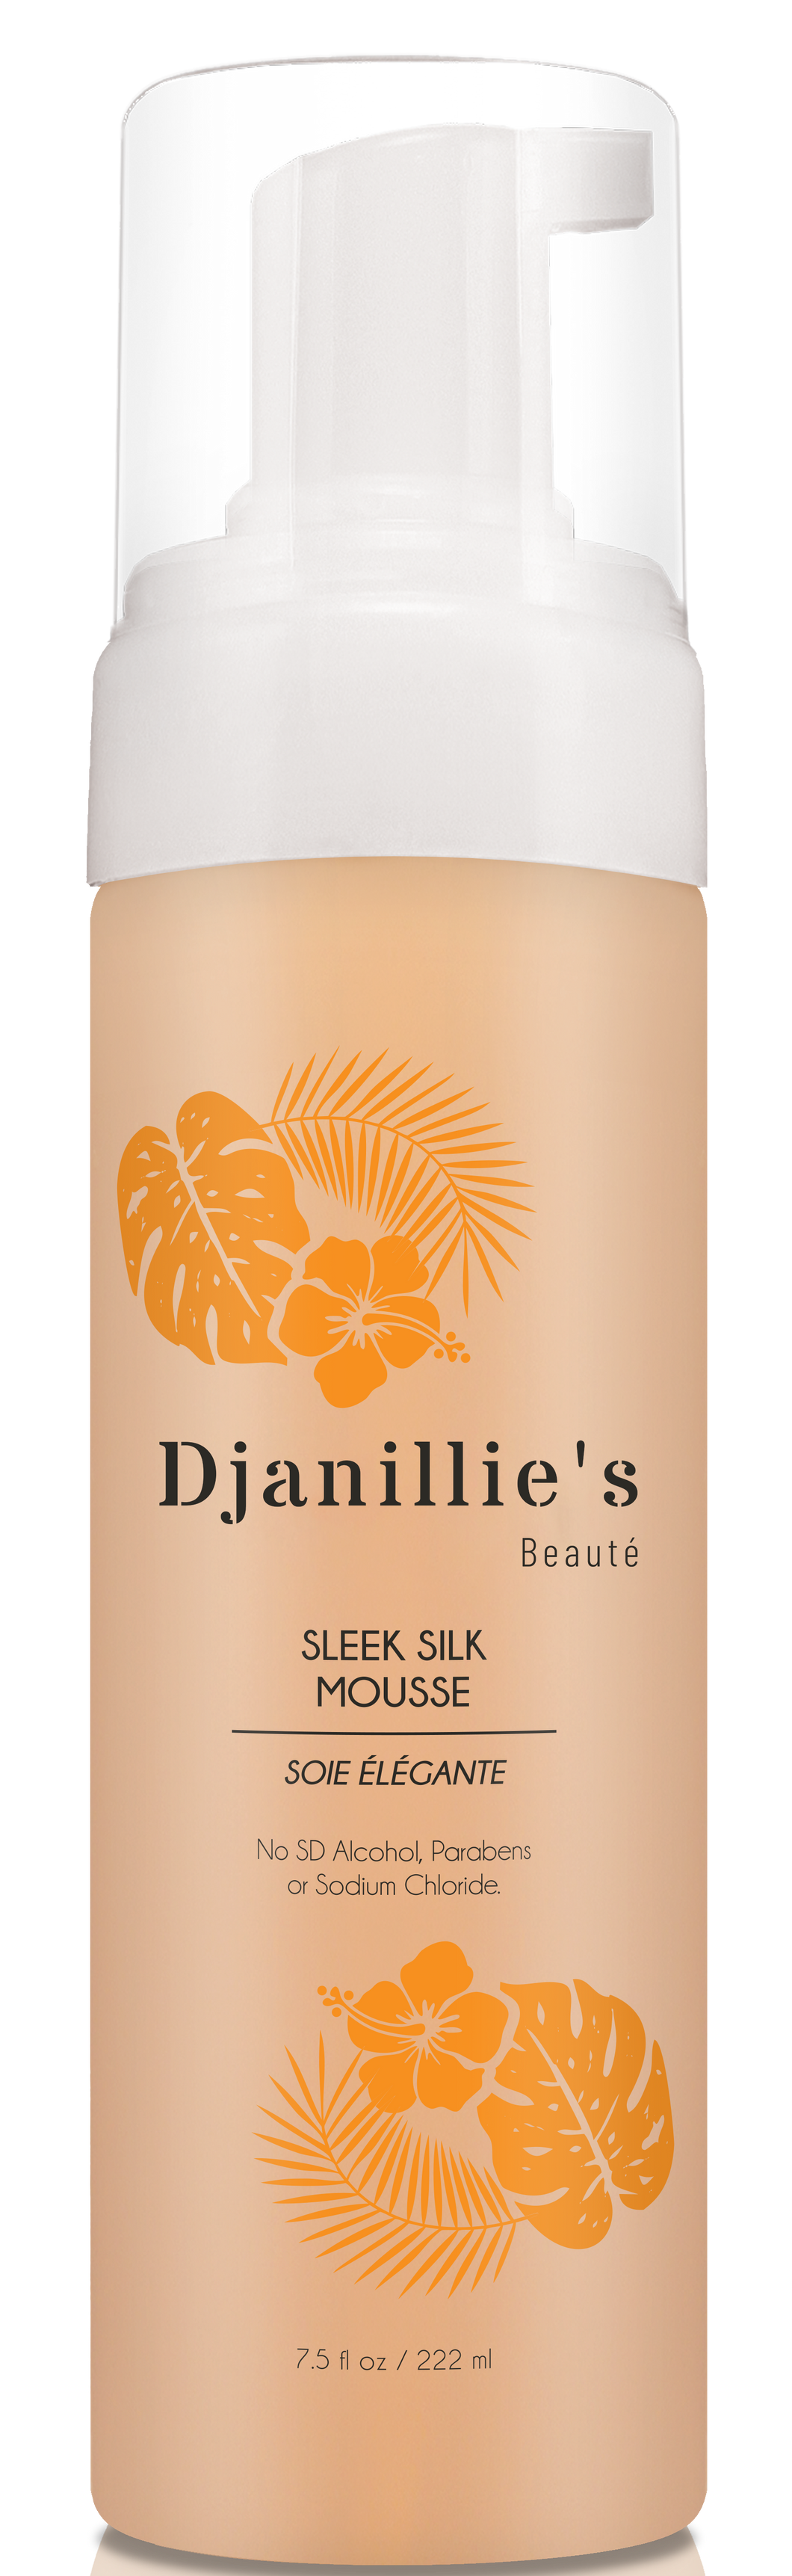 Sleek Silk Mousse - Djanillie's